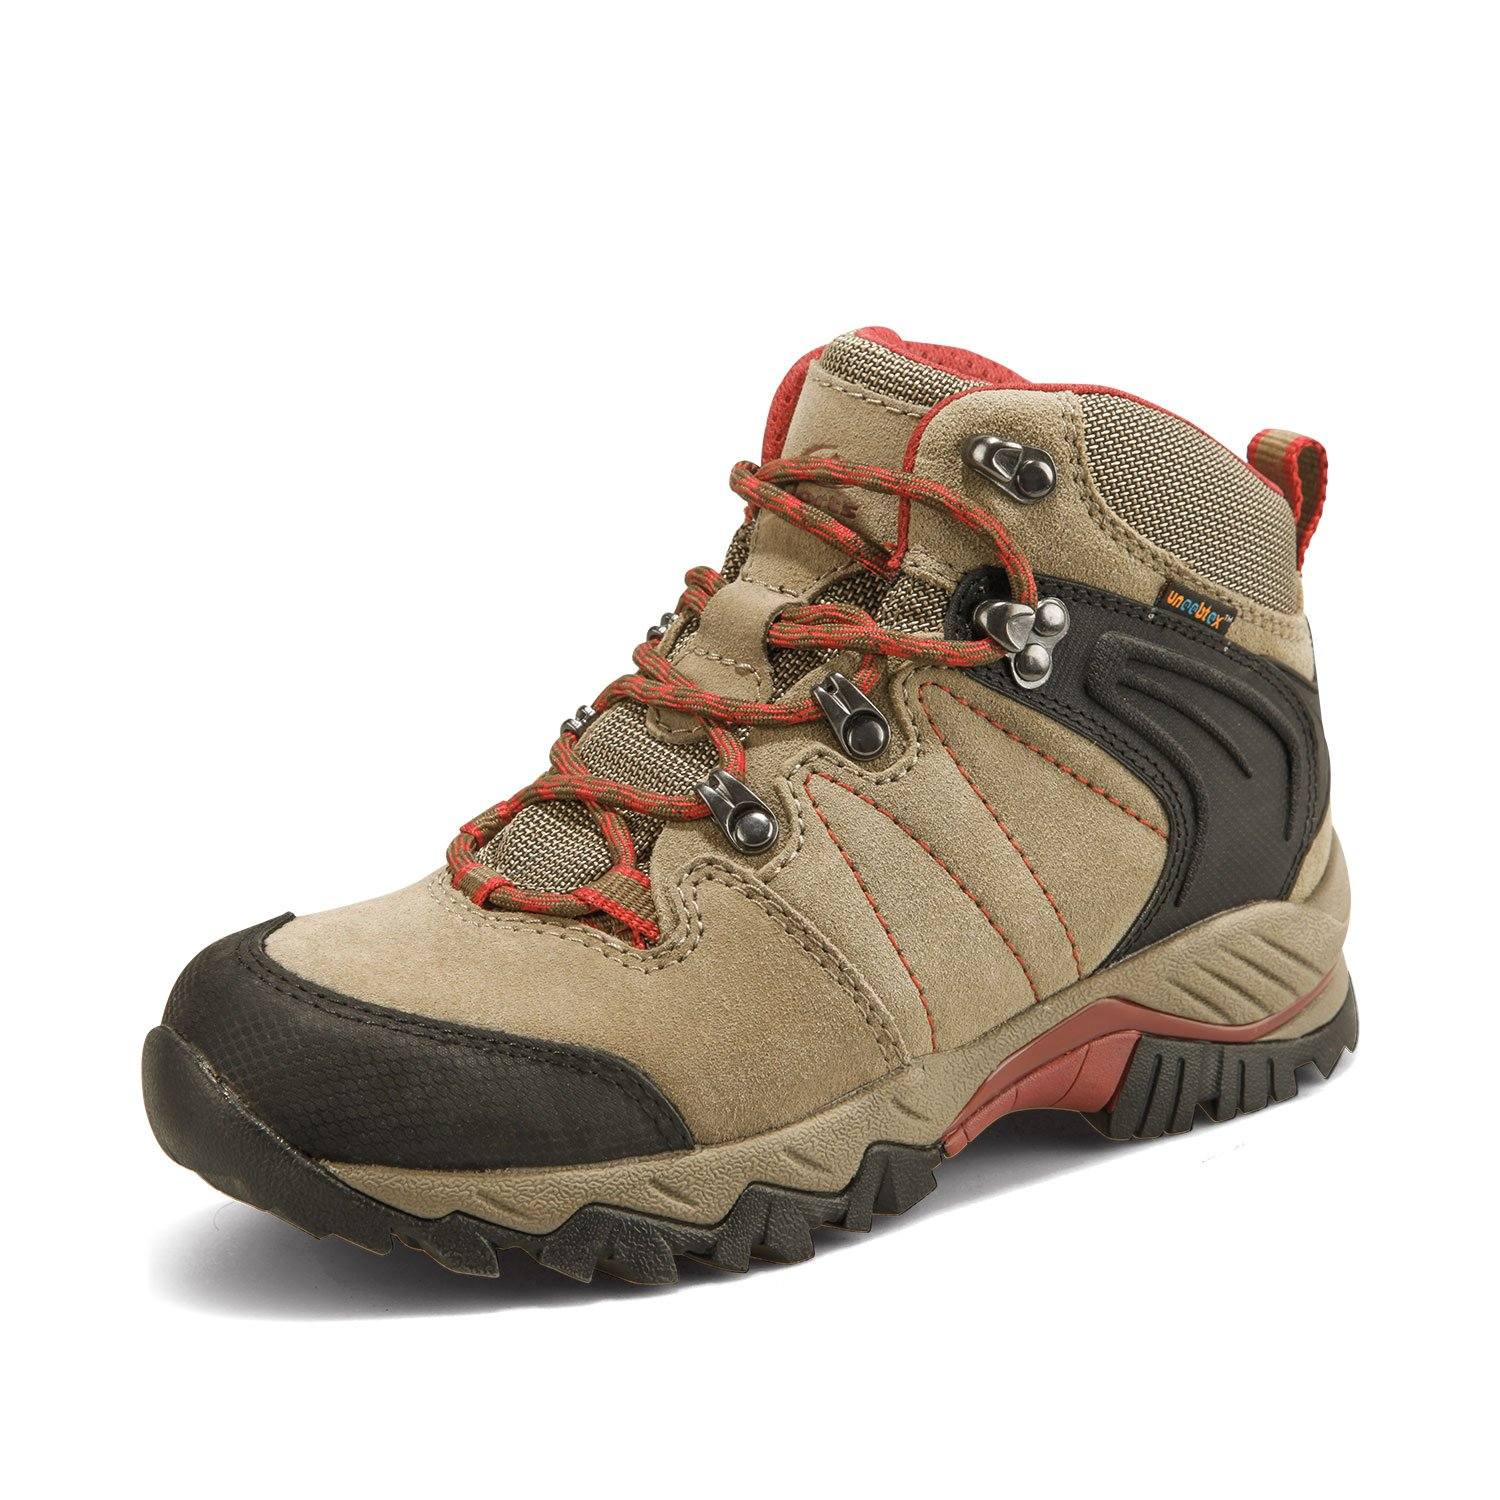 Brown Clorts Women's Hiking Boots Waterproof Lightweight Hiker Leather Hiking shoes Outdoor Backpacking Trekking Trail